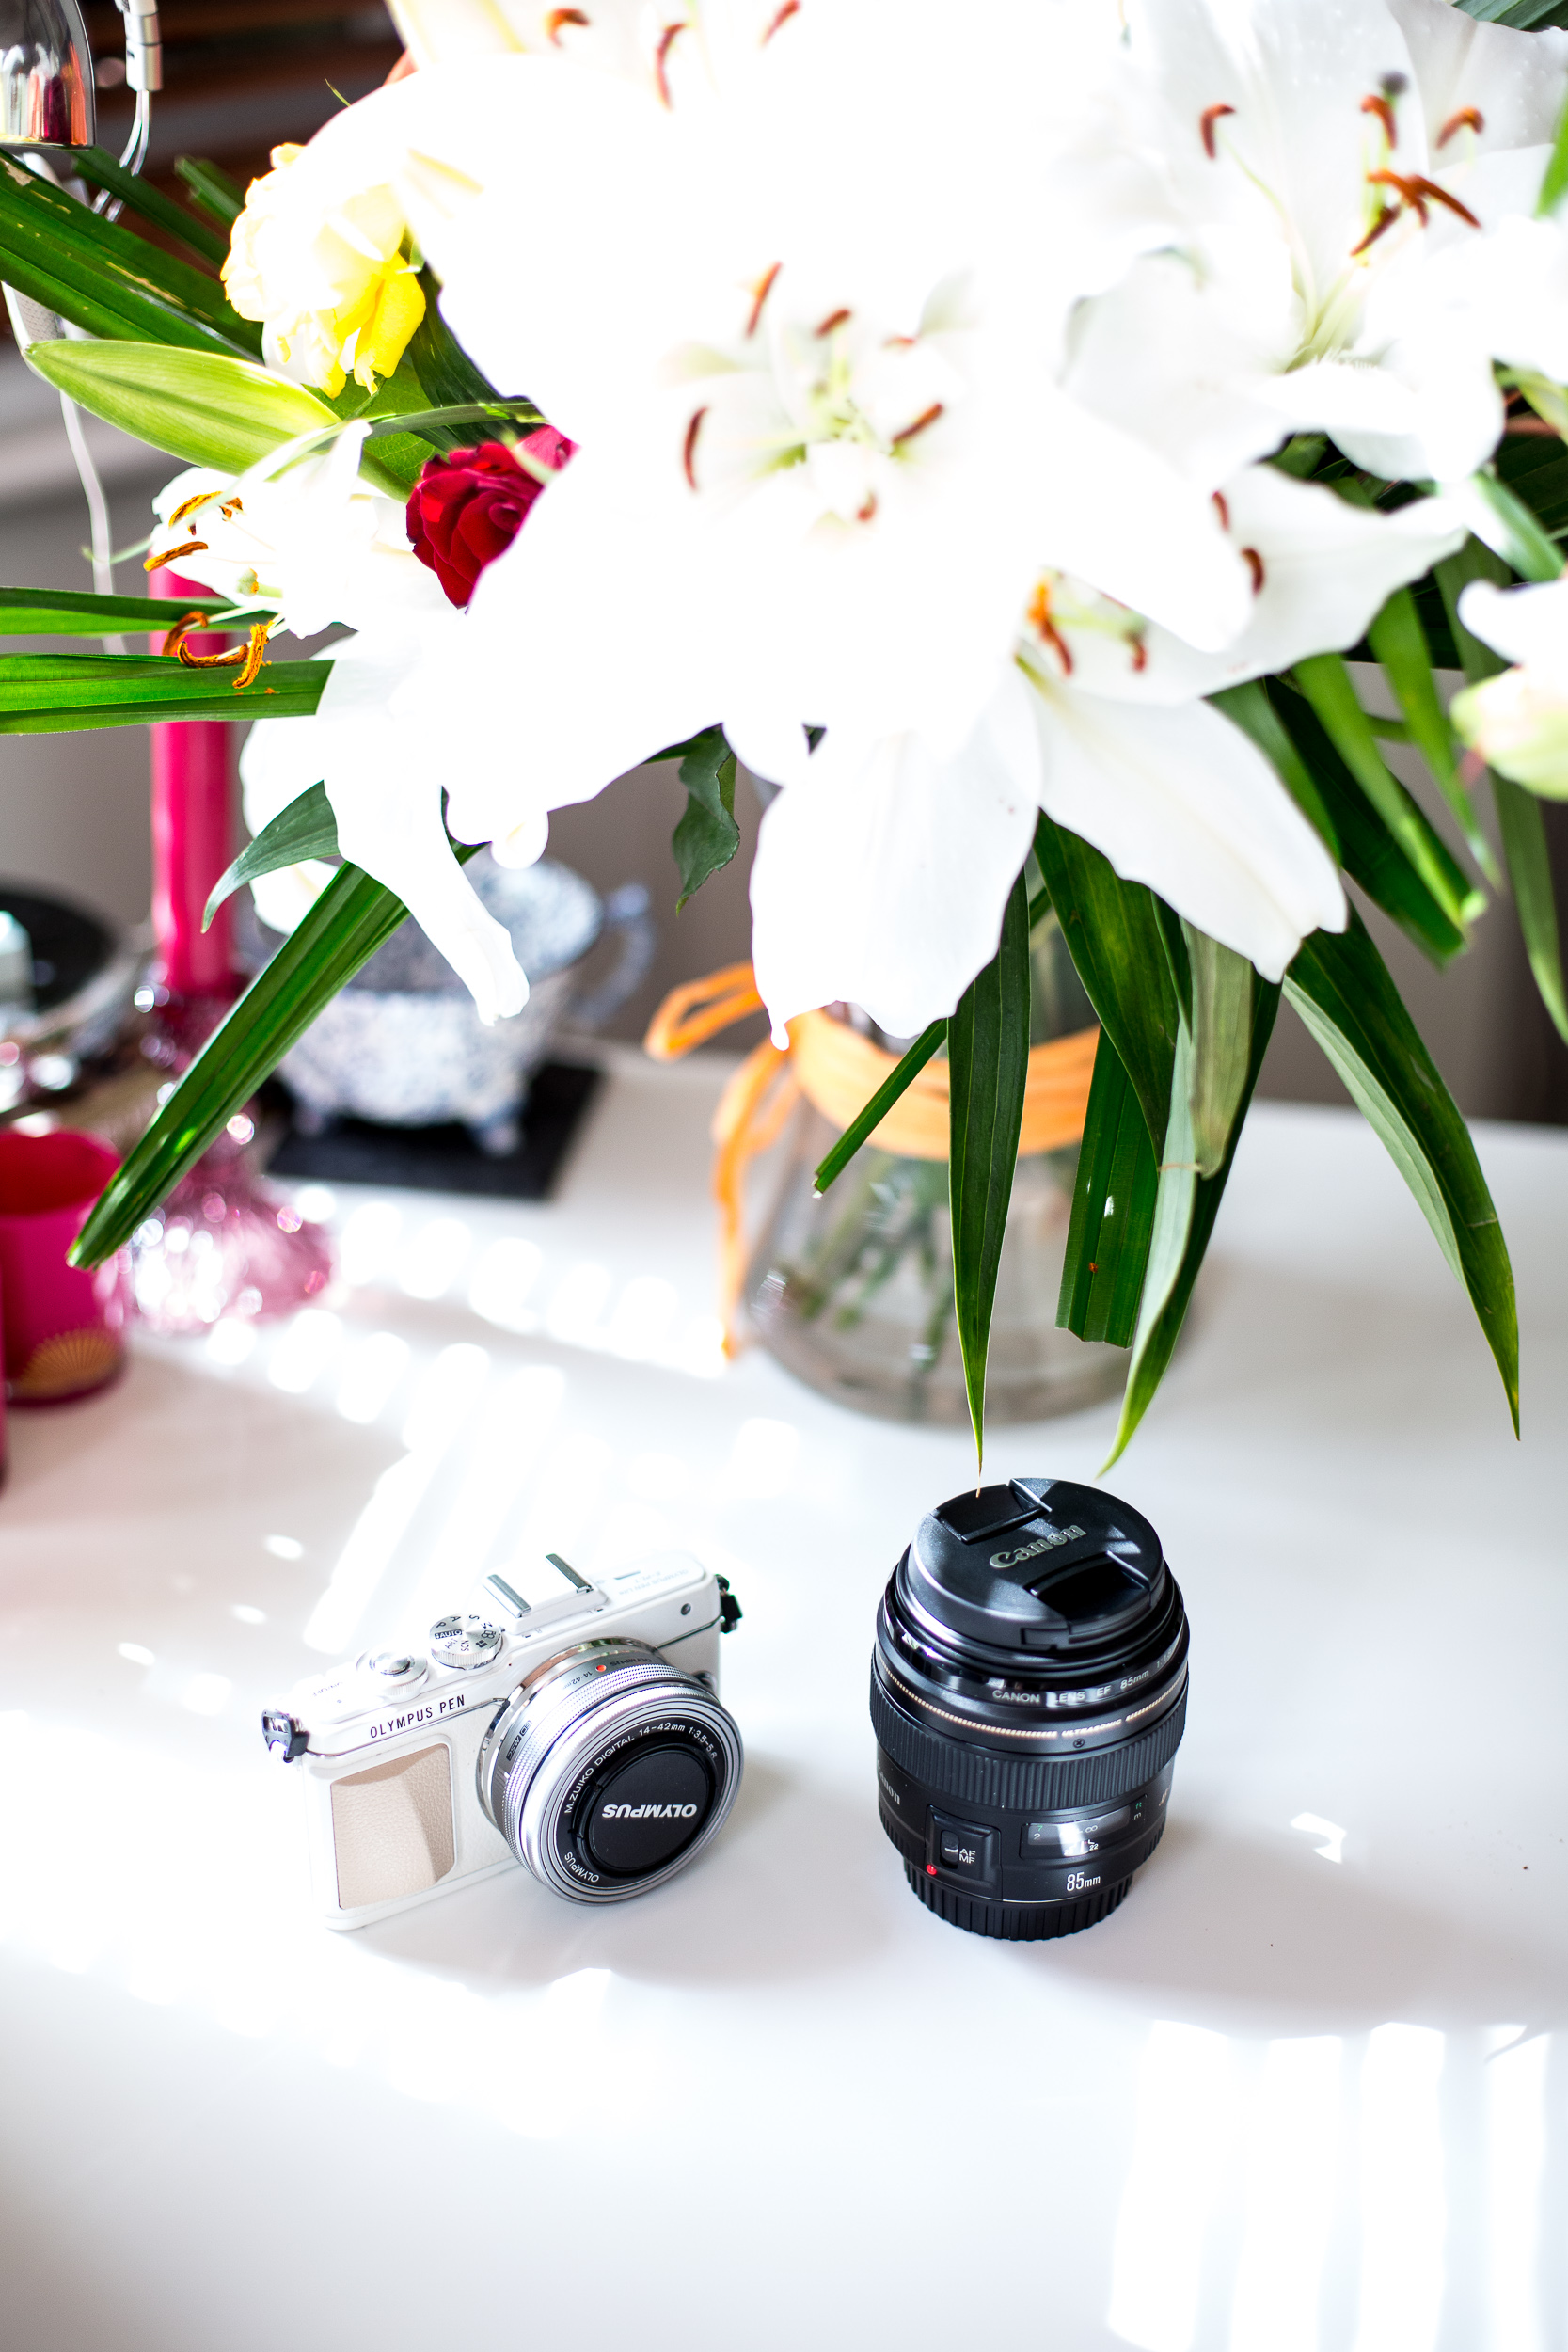 Blog Photography Tips